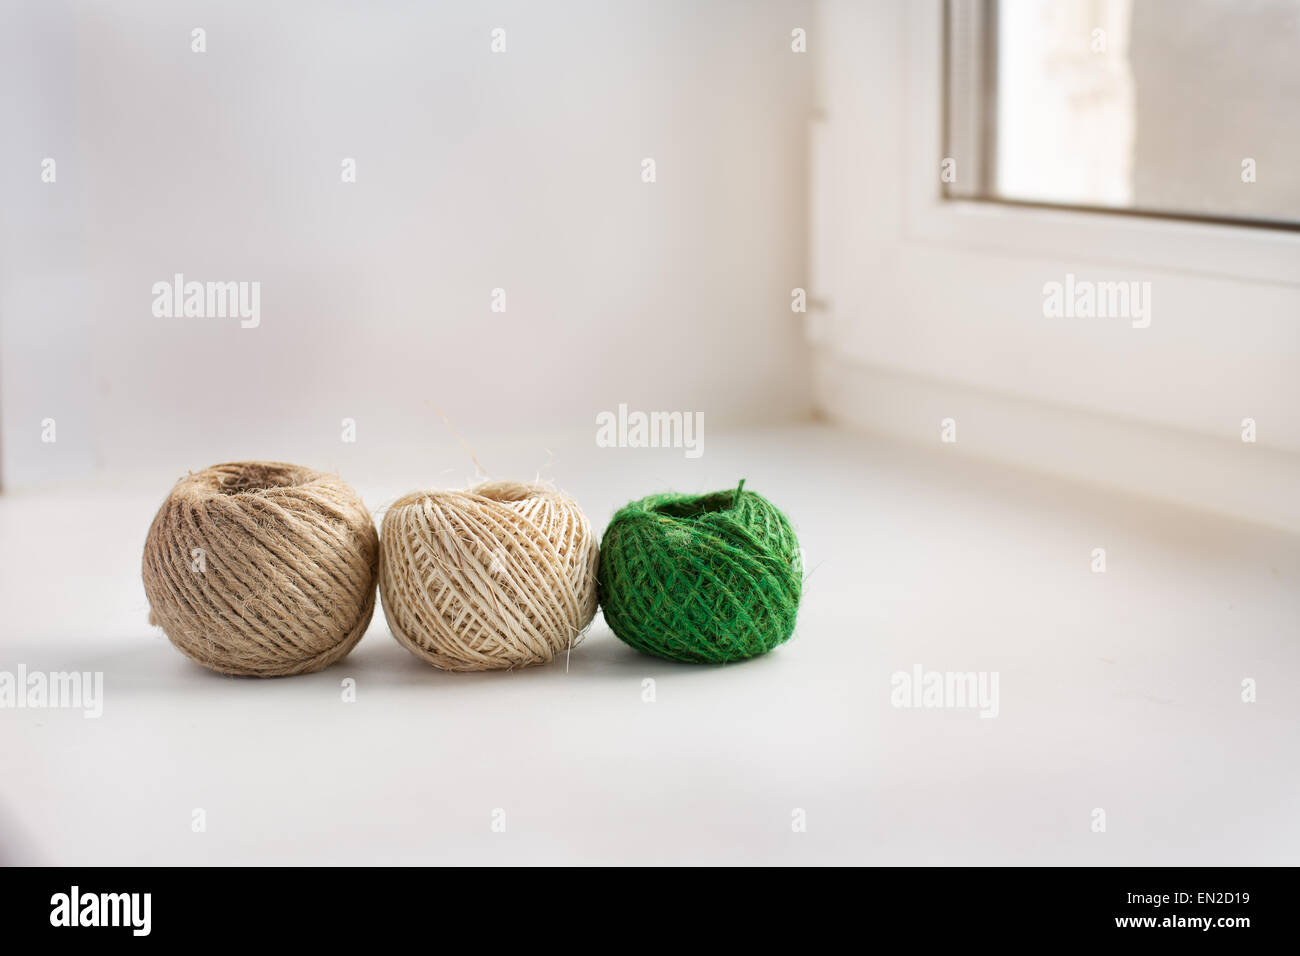 Three skeins of thread in a row on the windowsill - Stock Image